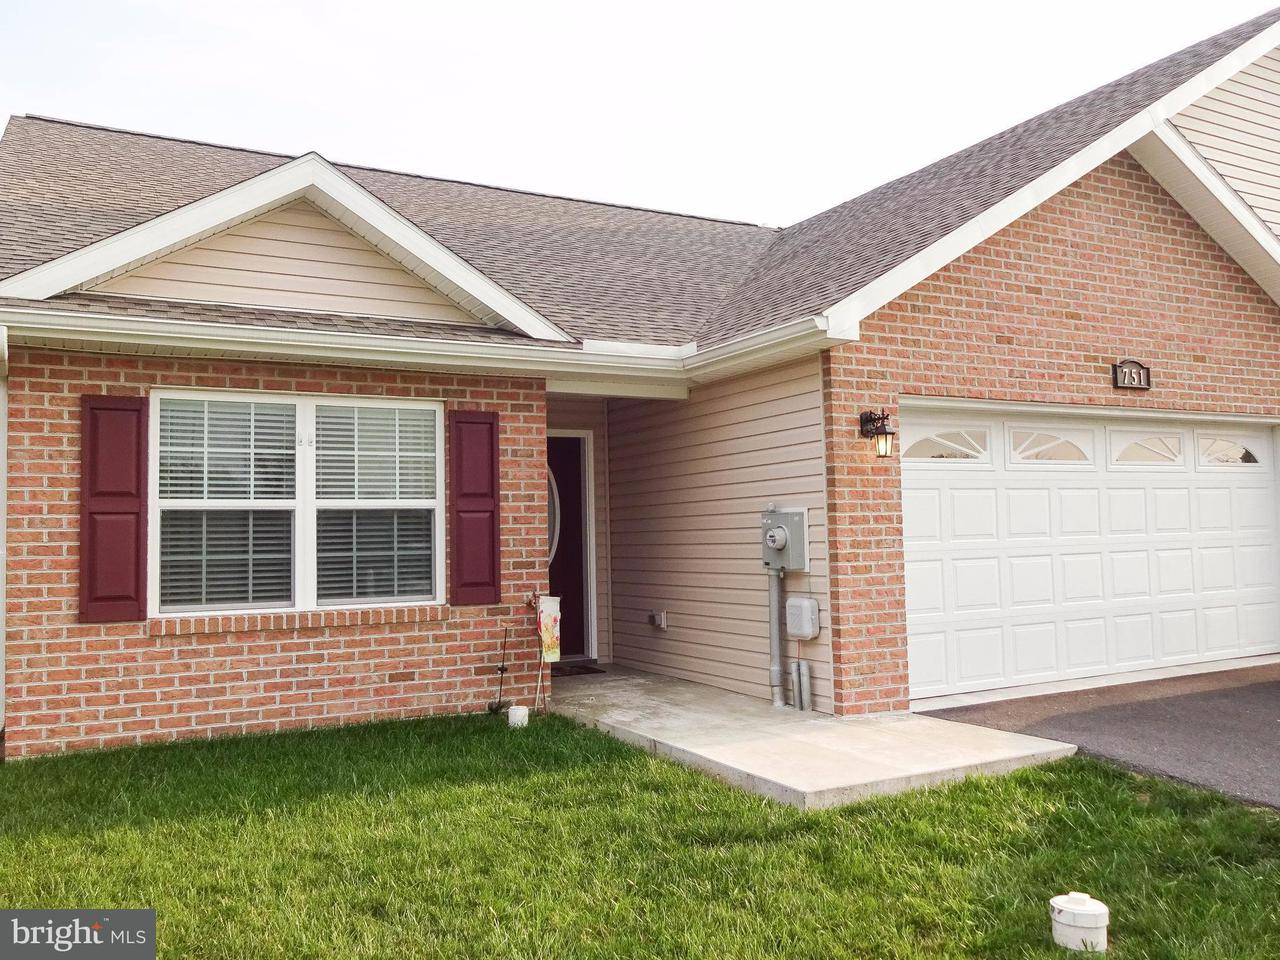 Other Residential for Rent at 751 Shook Ct W Greencastle, Pennsylvania 17225 United States